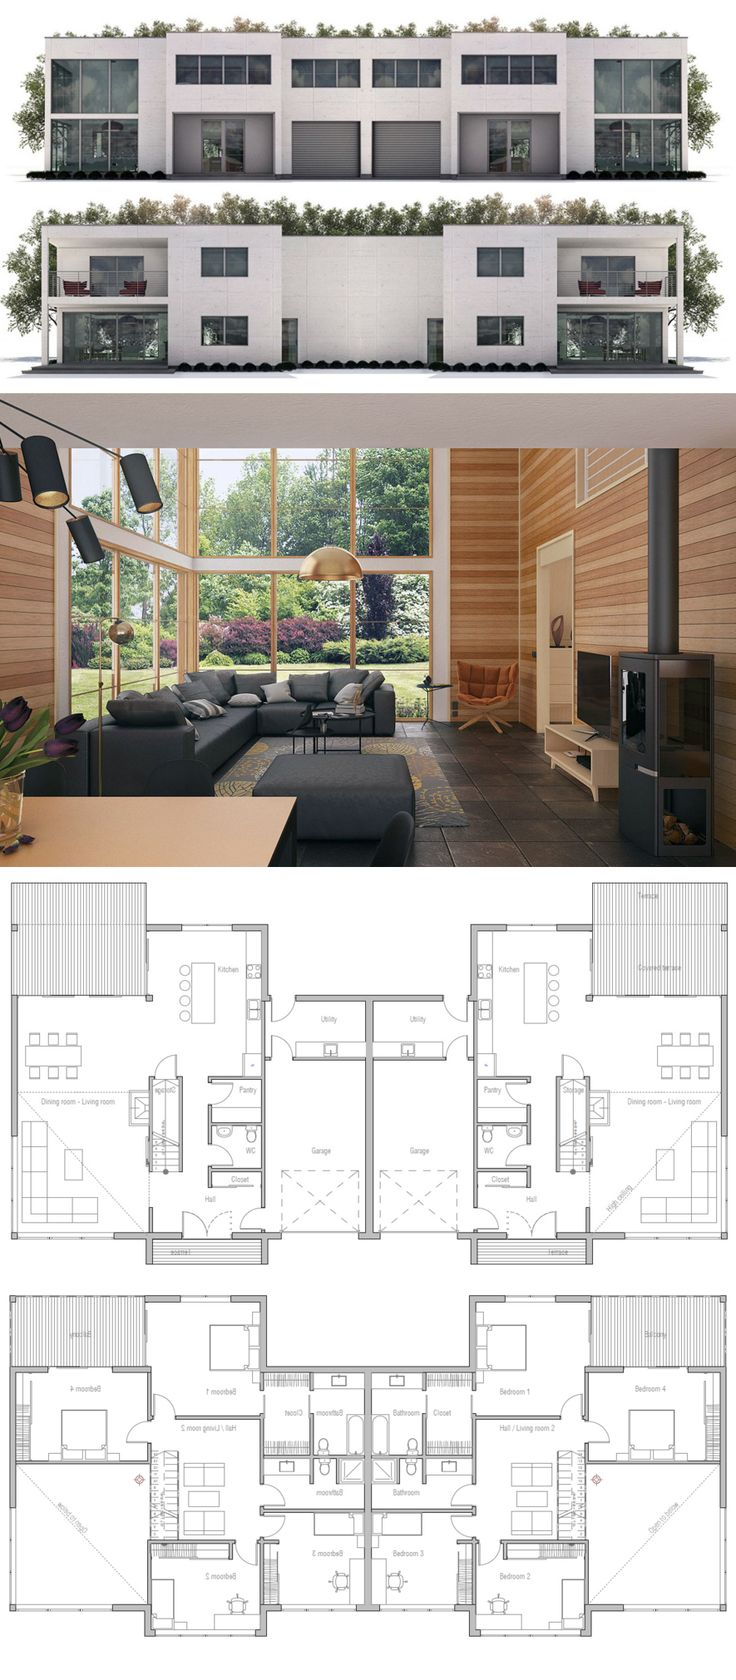 duplex house plan great pin for oahu architectural design visit http